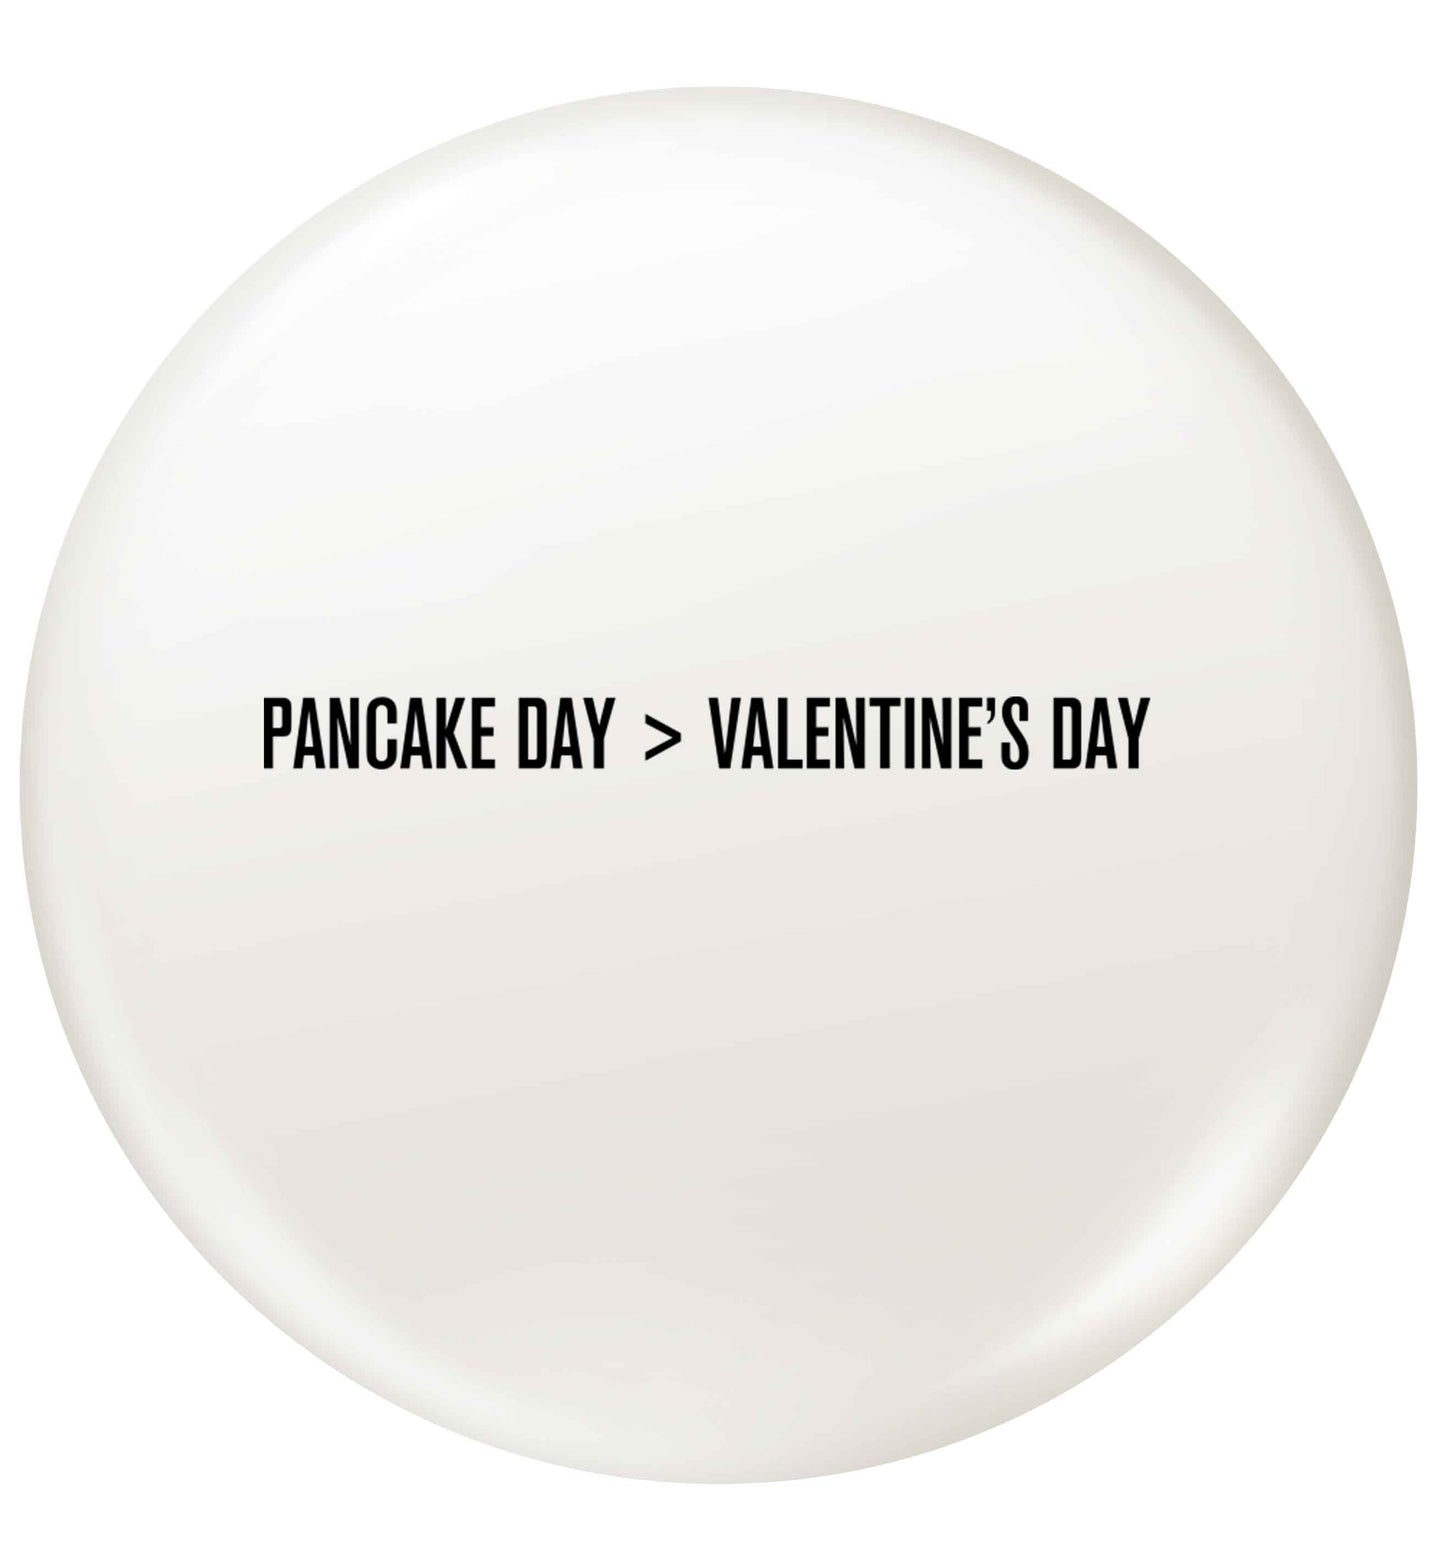 Pancake day > valentines day small 25mm Pin badge